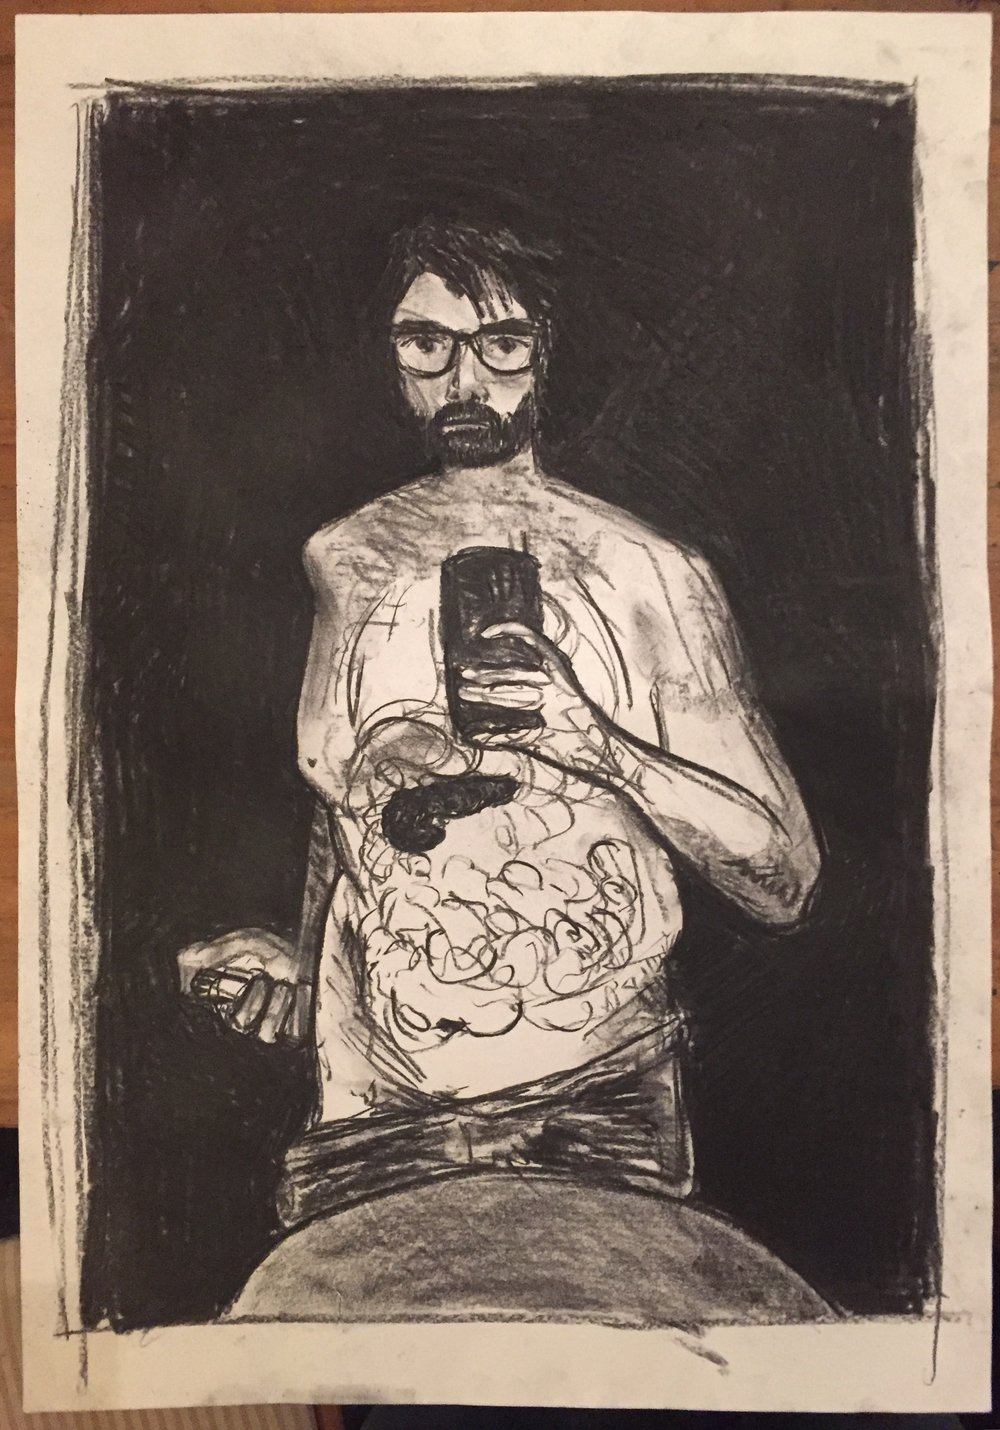 Pickering, A. 2017: Selfie with injection pen and pancreas. Charcoal on A2 paper.